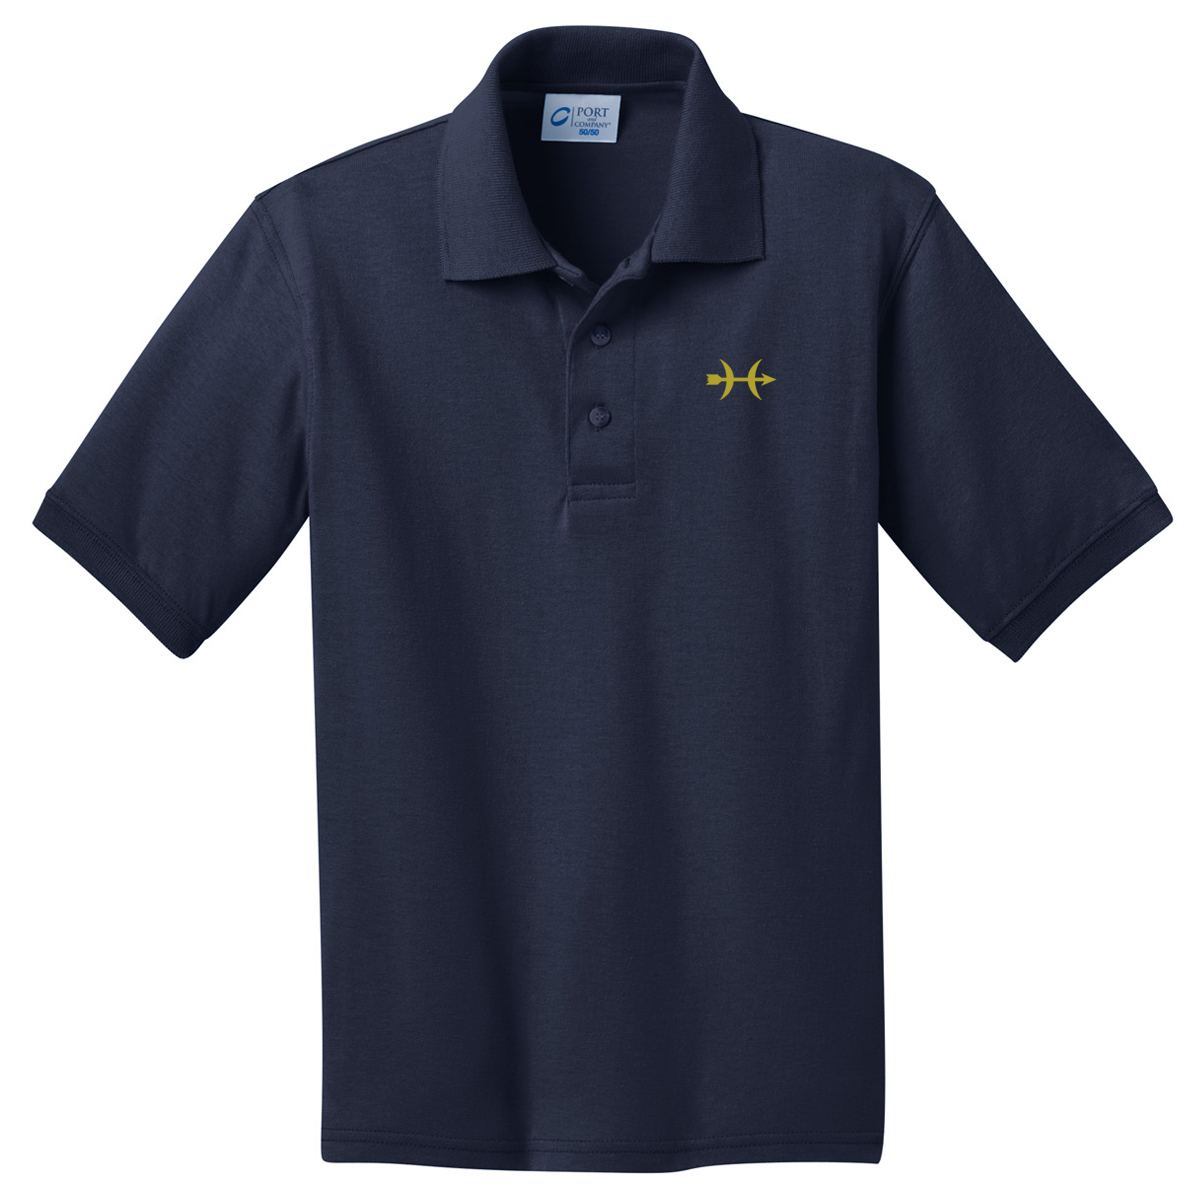 Hunt Yachts - Youth Cotton Polo